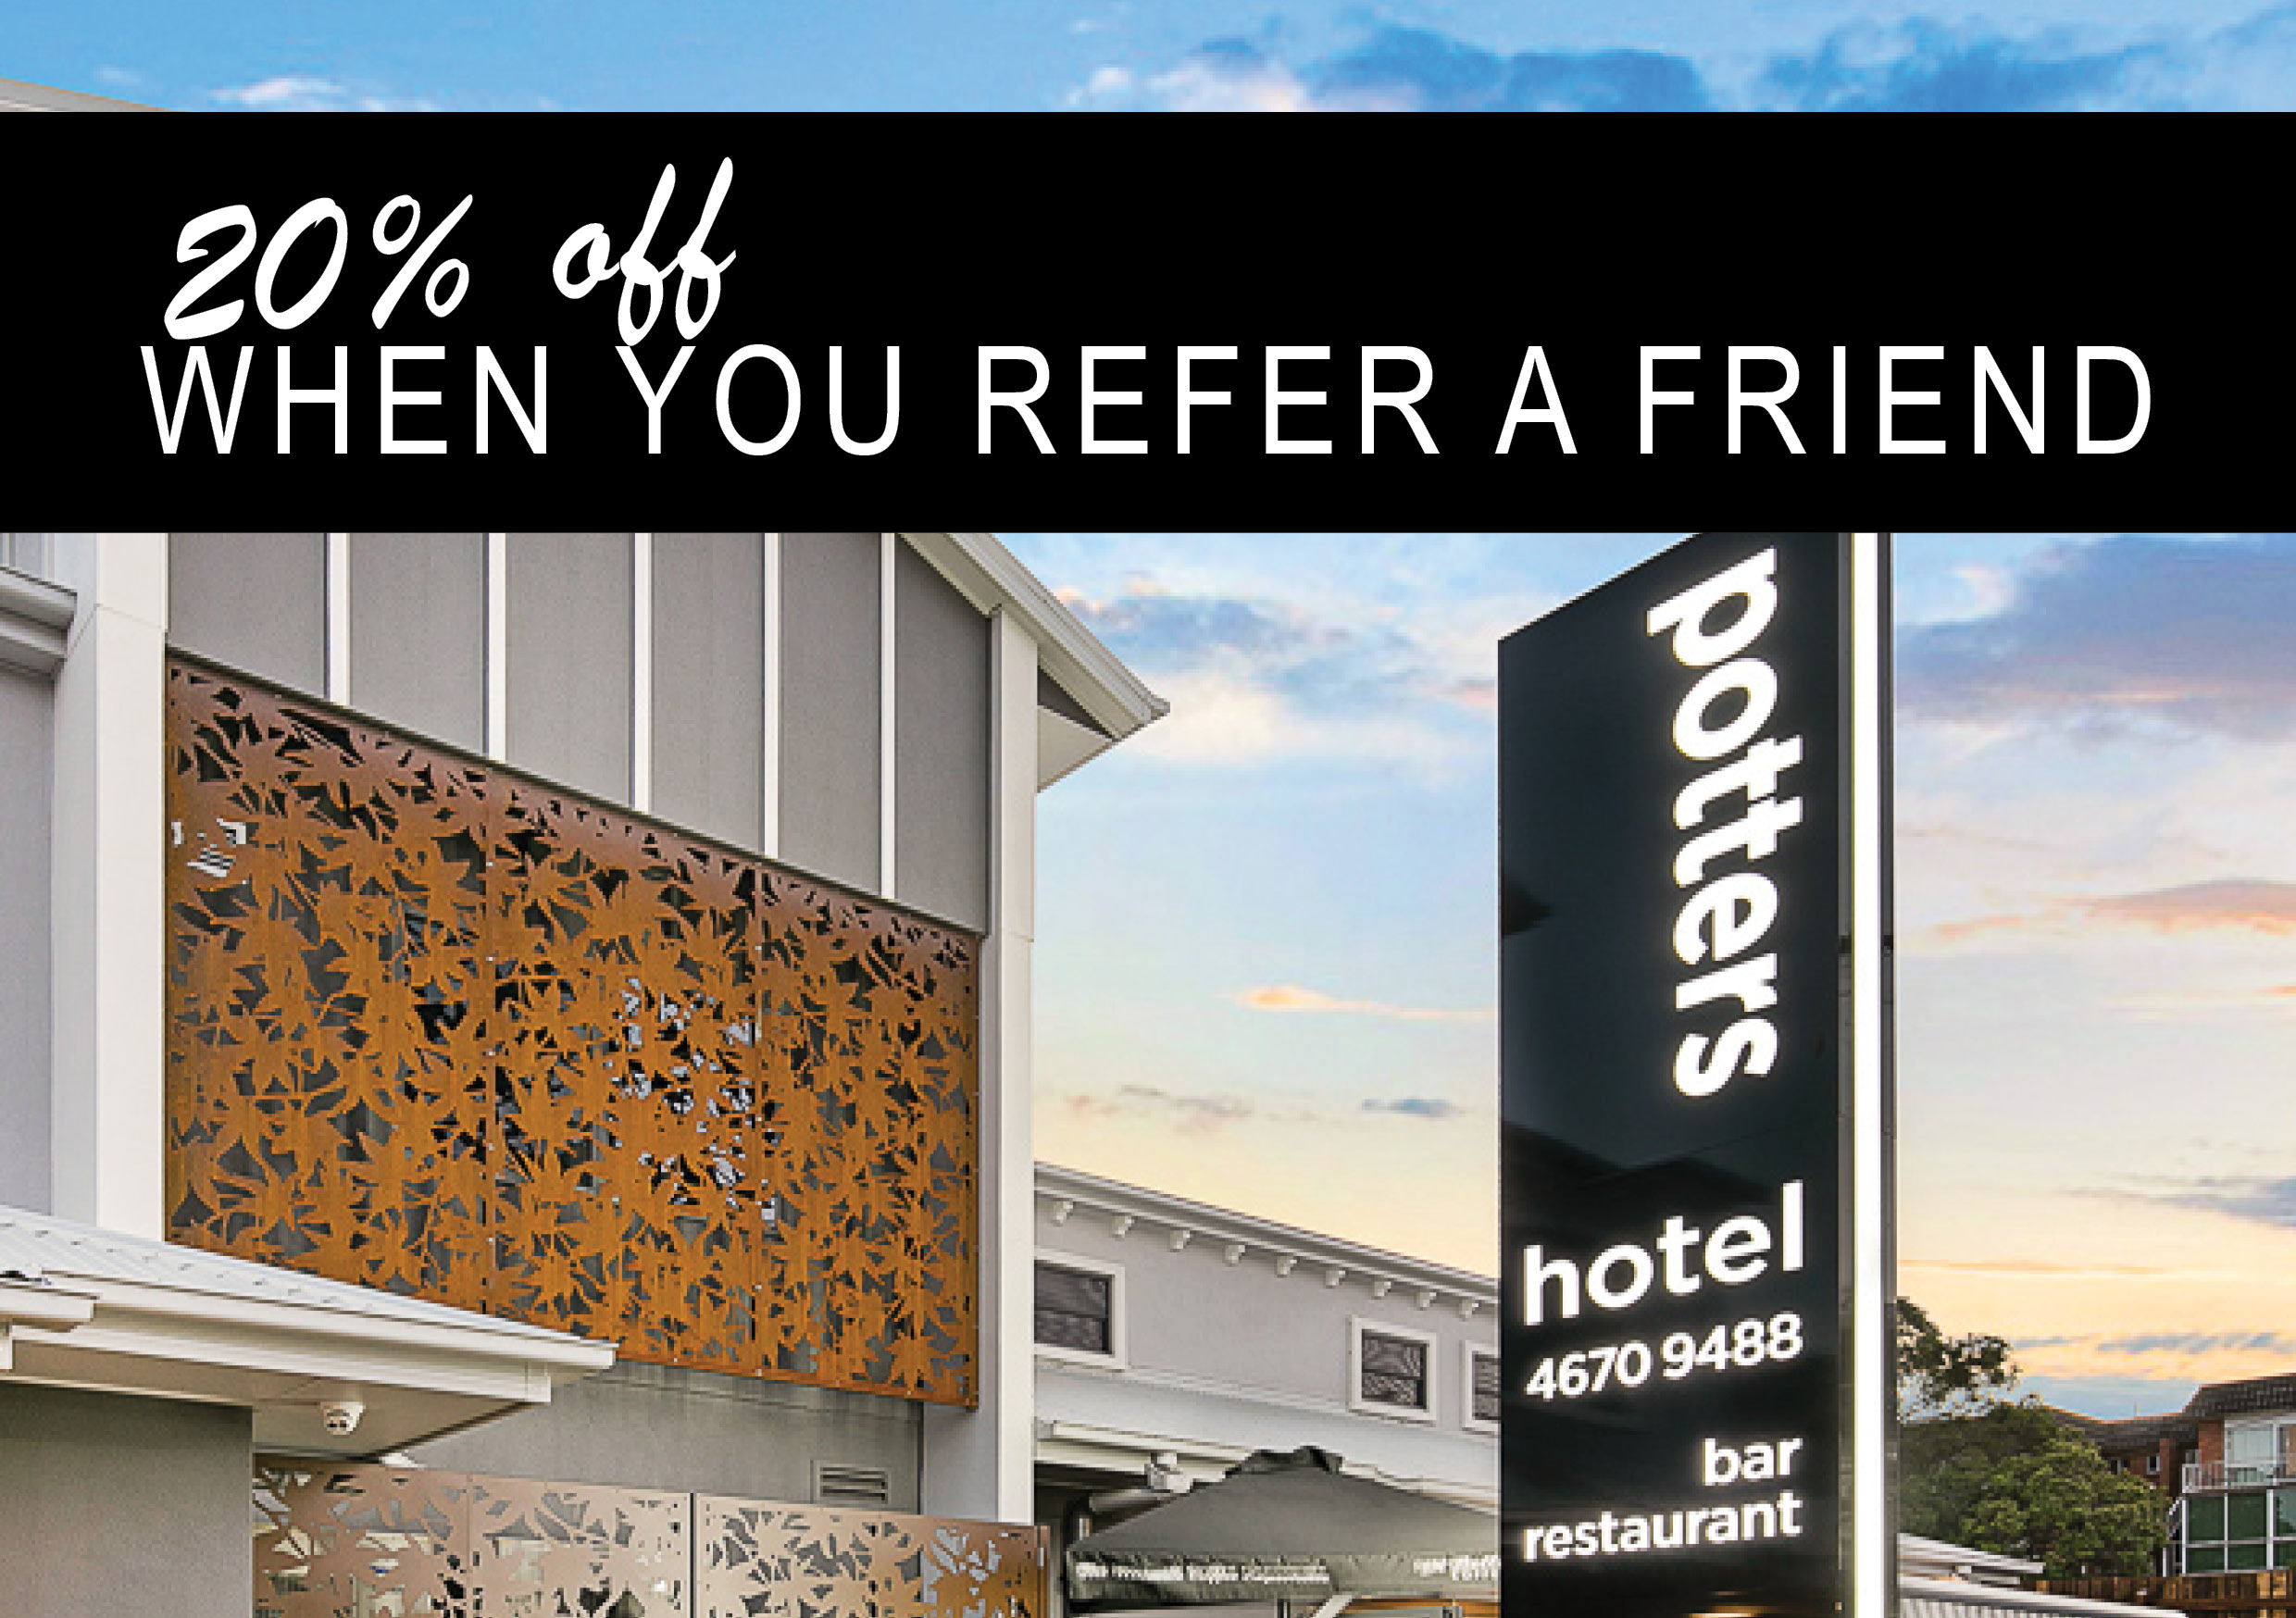 20% off_Refer a friend